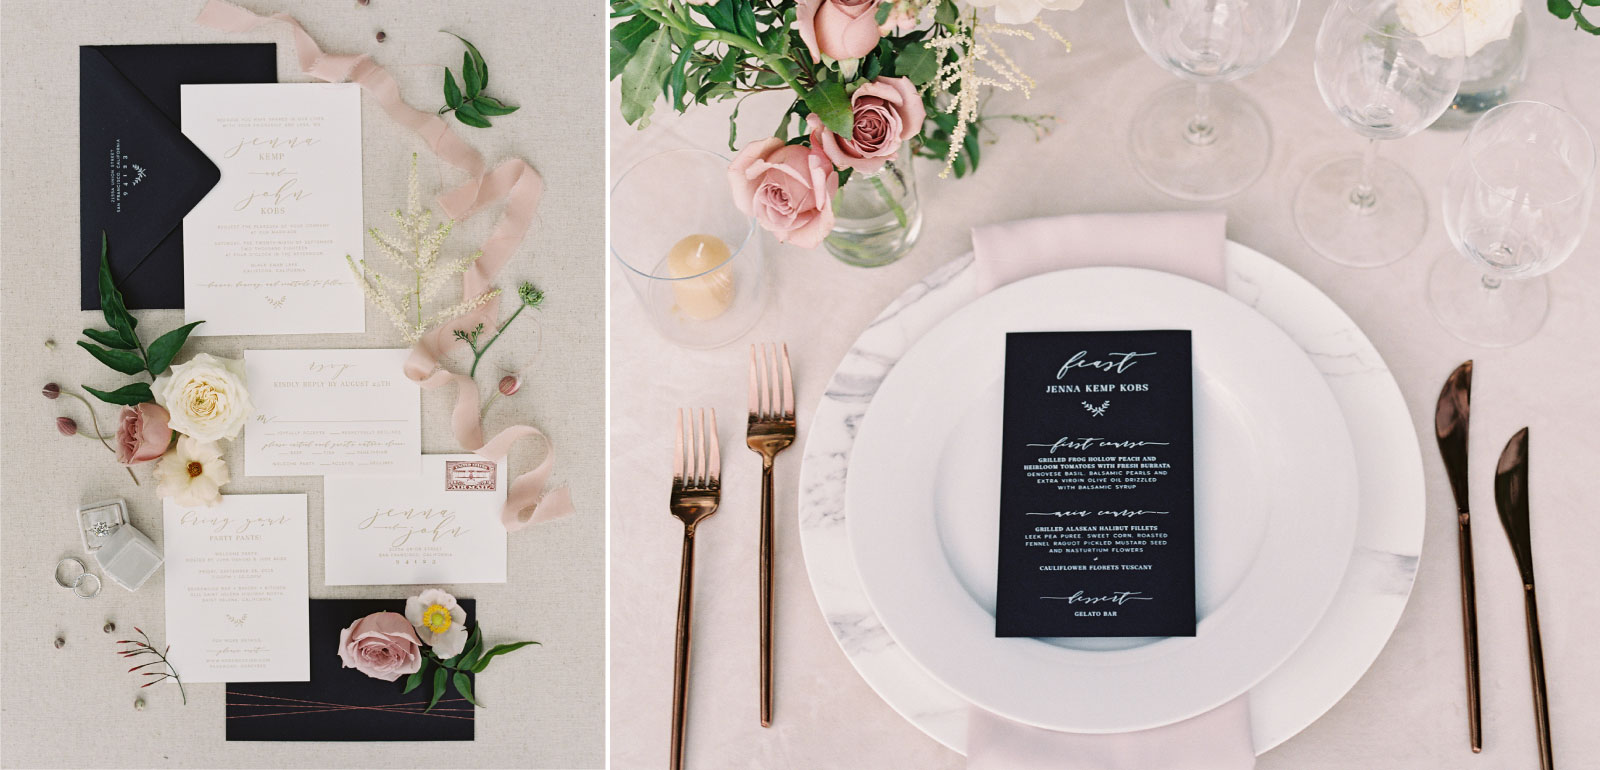 Digital Printing | Place Cards, Escort Cards, Menus, Programs and Signage